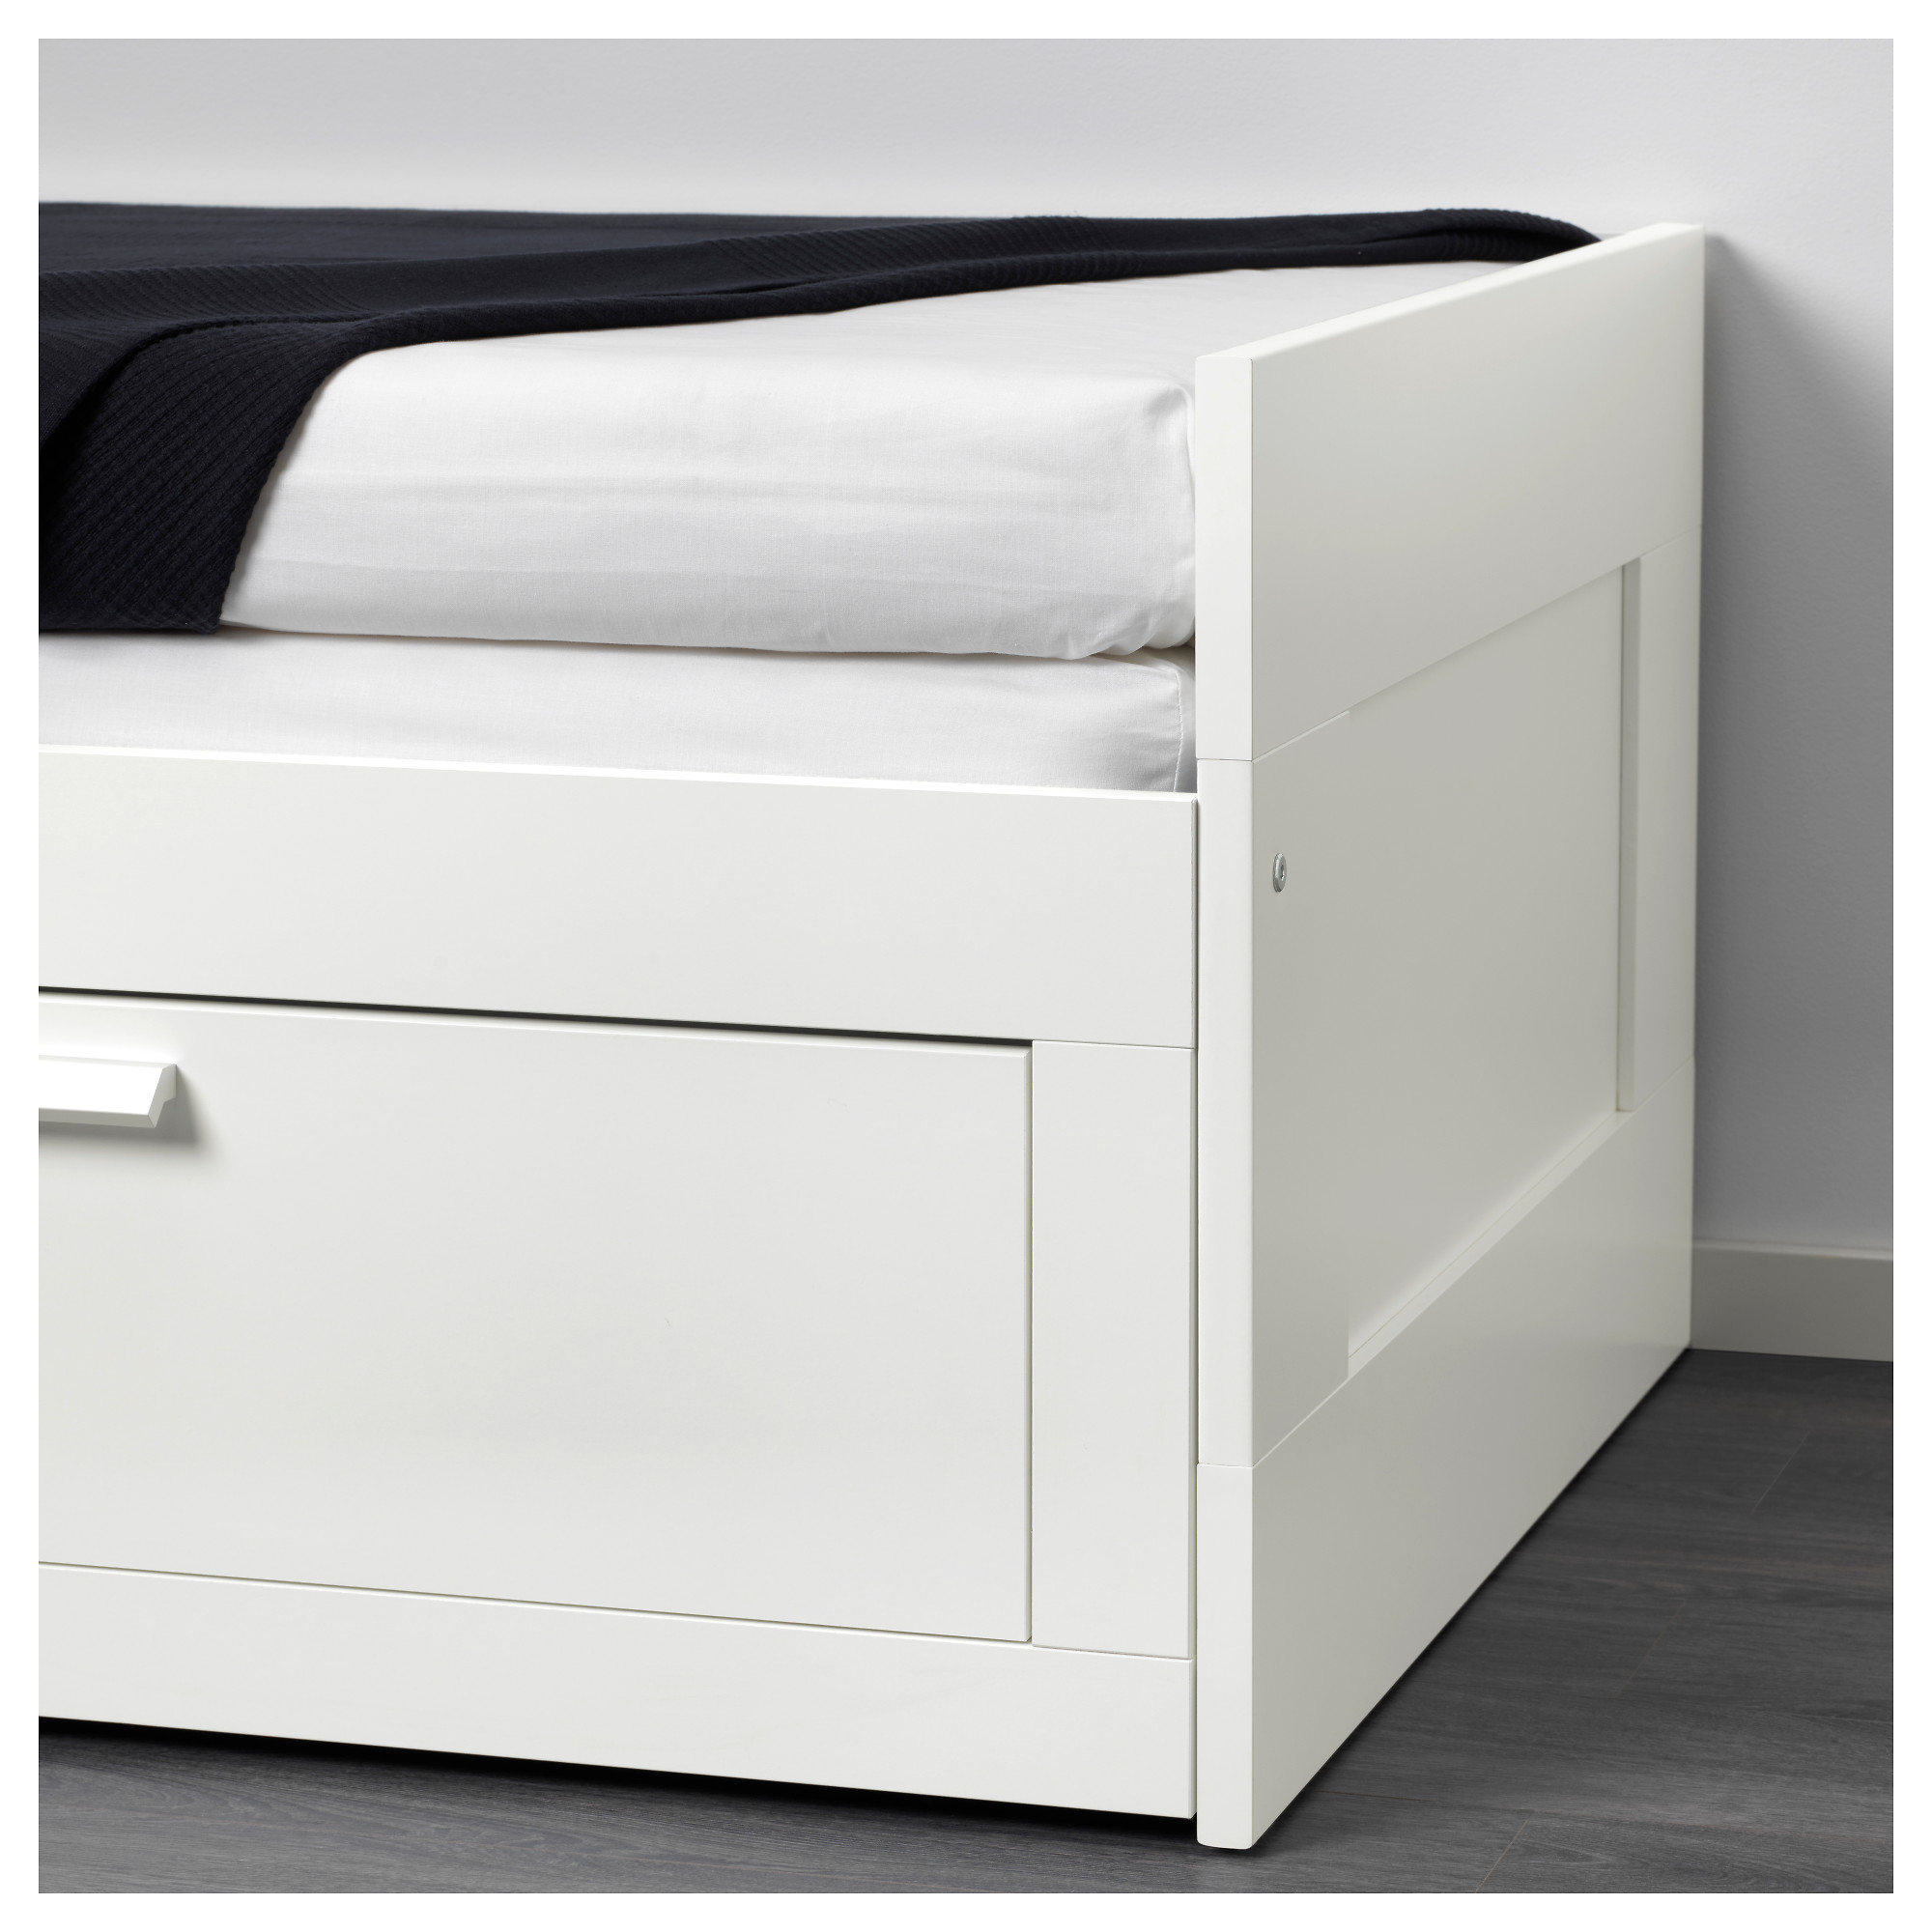 Brimnes Day Bed Frame With 2 Drawers White Ikea Hong Kong And Macau